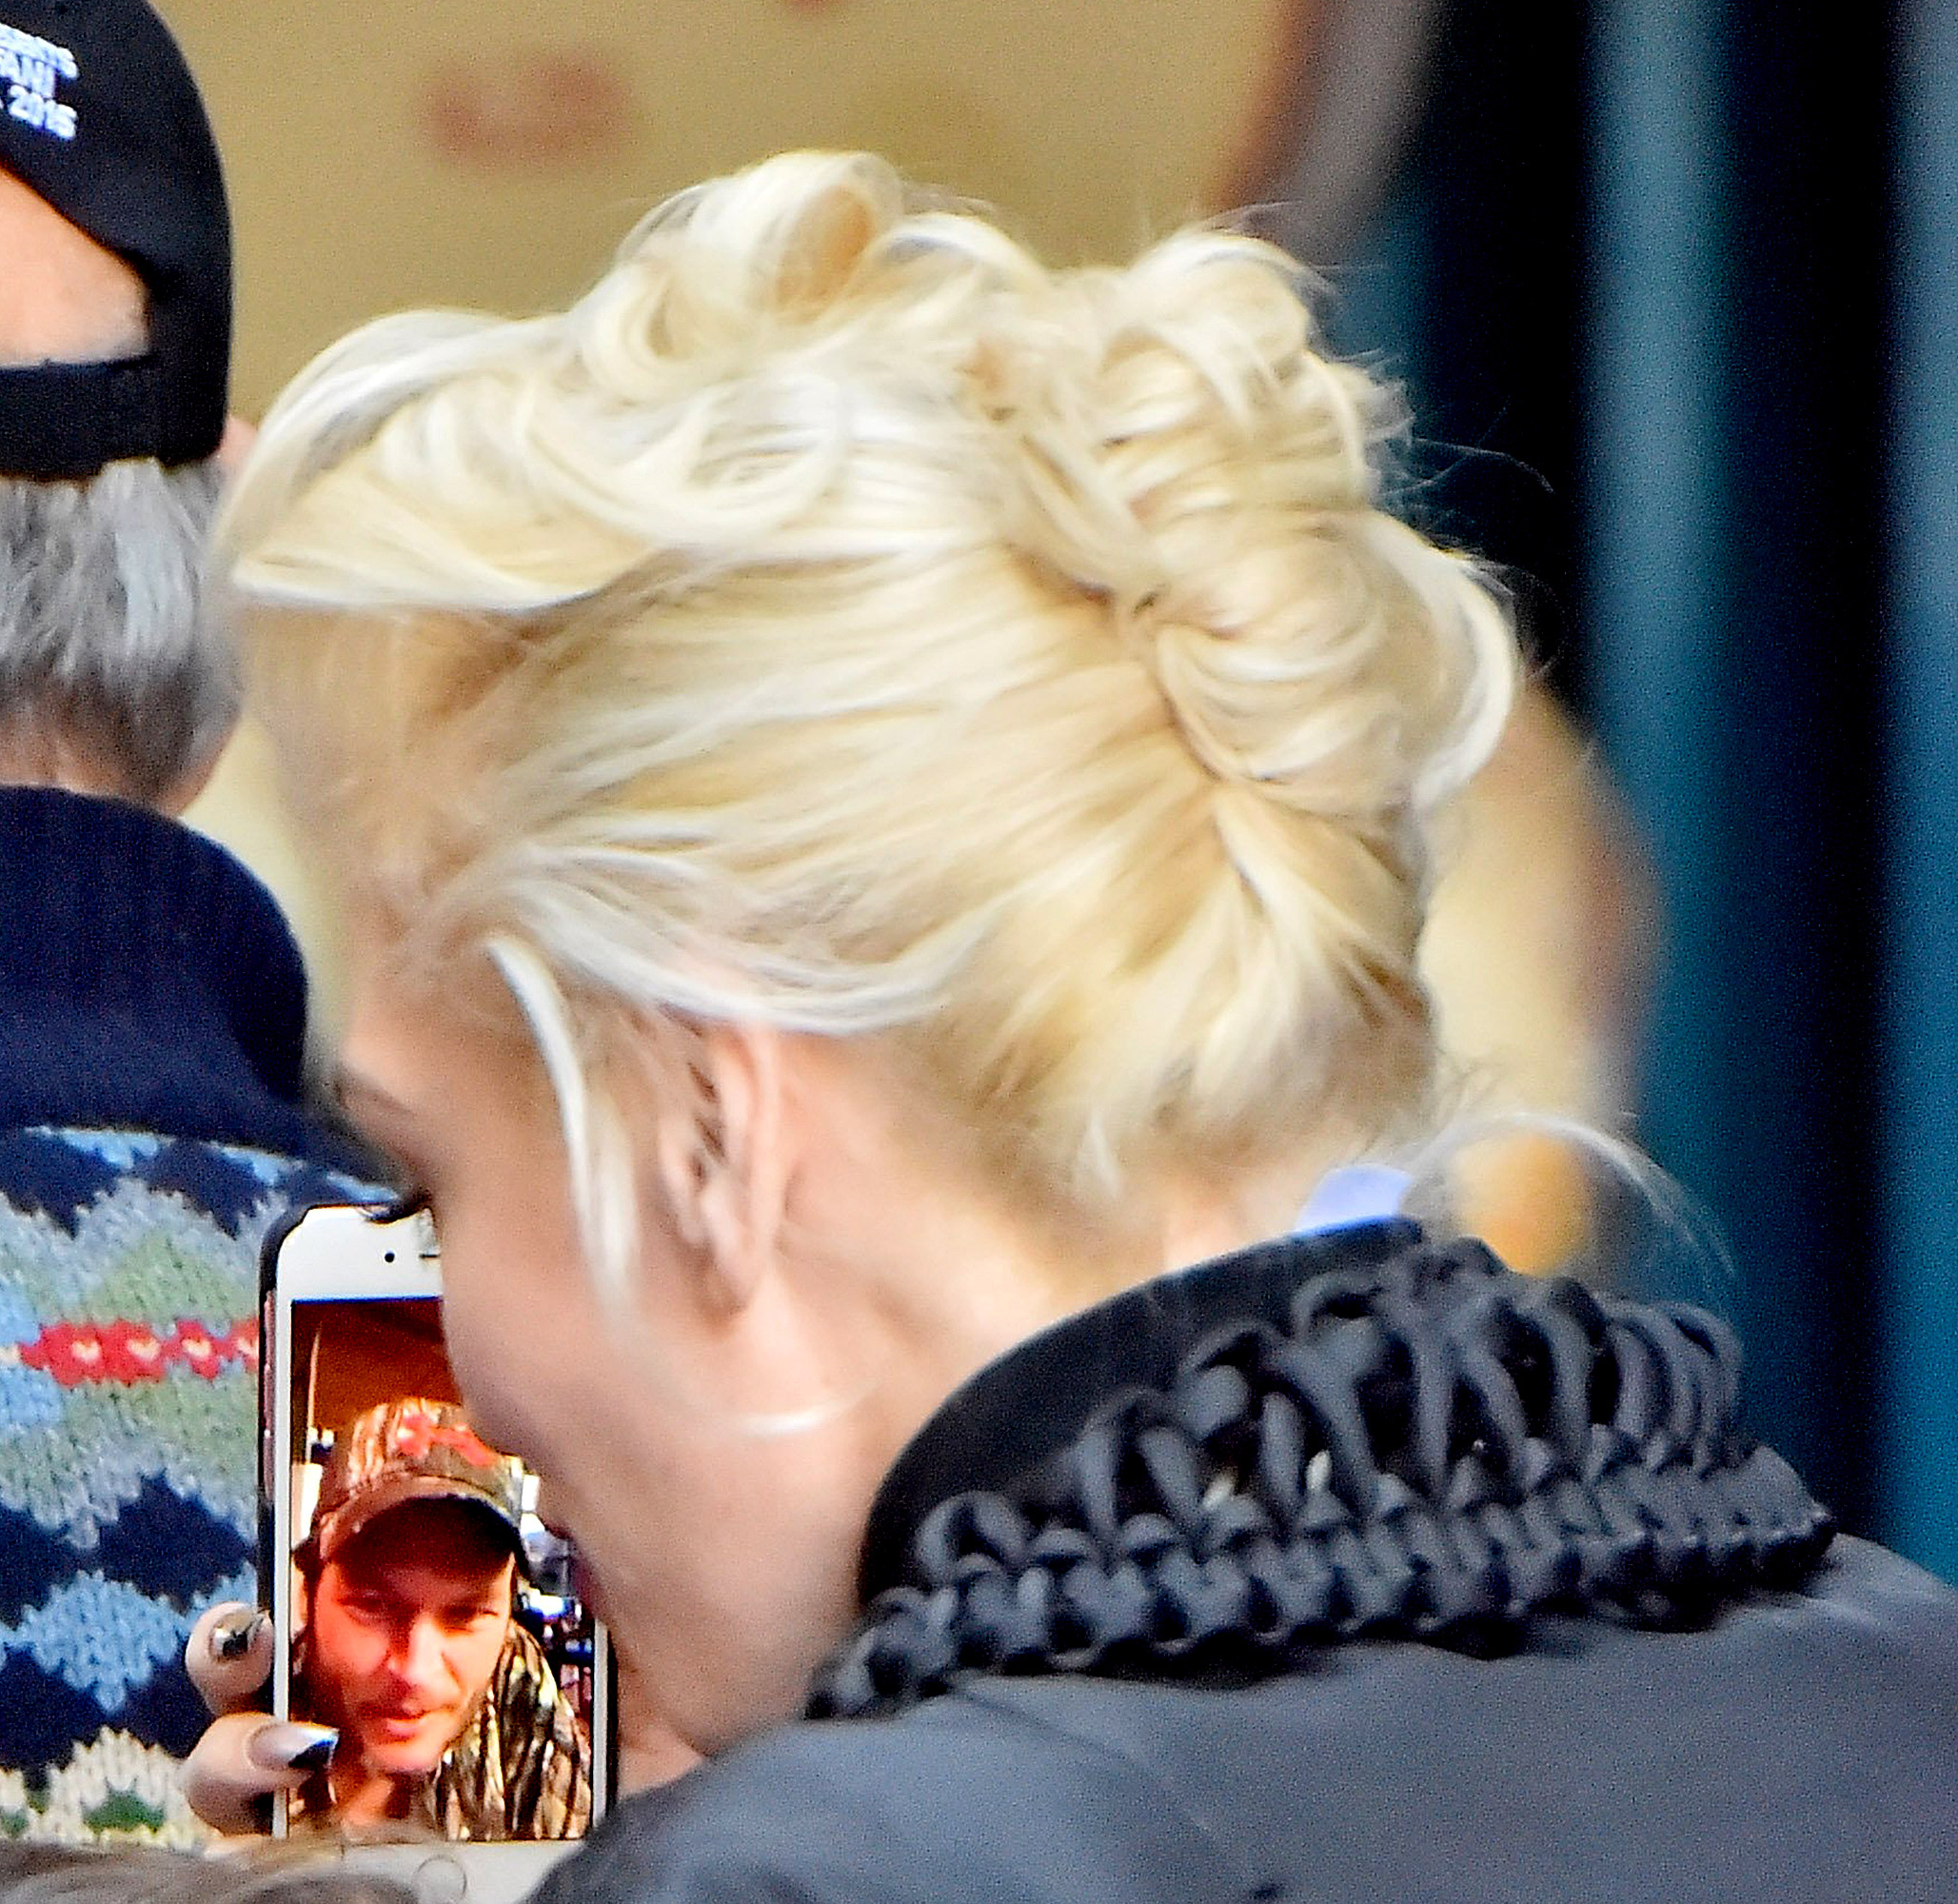 Blake Shelton Gwen Stefani - So adorbs. The day after Thanksgiving, Stefani and Shelton were caught FaceTiming (by an eagle-eyed fan) while she was exploring Disneyland with her three young sons.